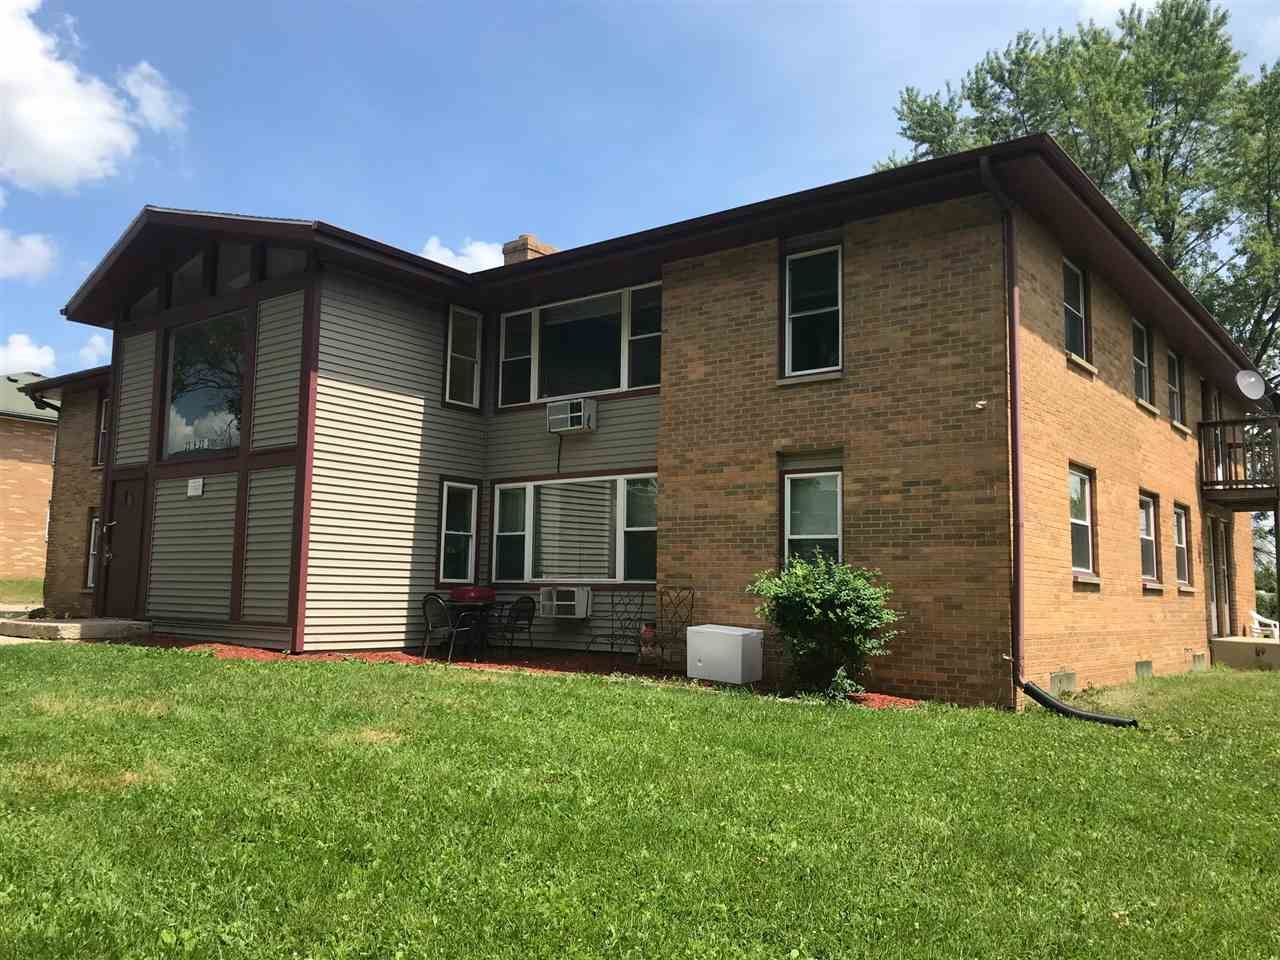 2309 Carling Dr, Madison, WI 53711 - #: 1898412